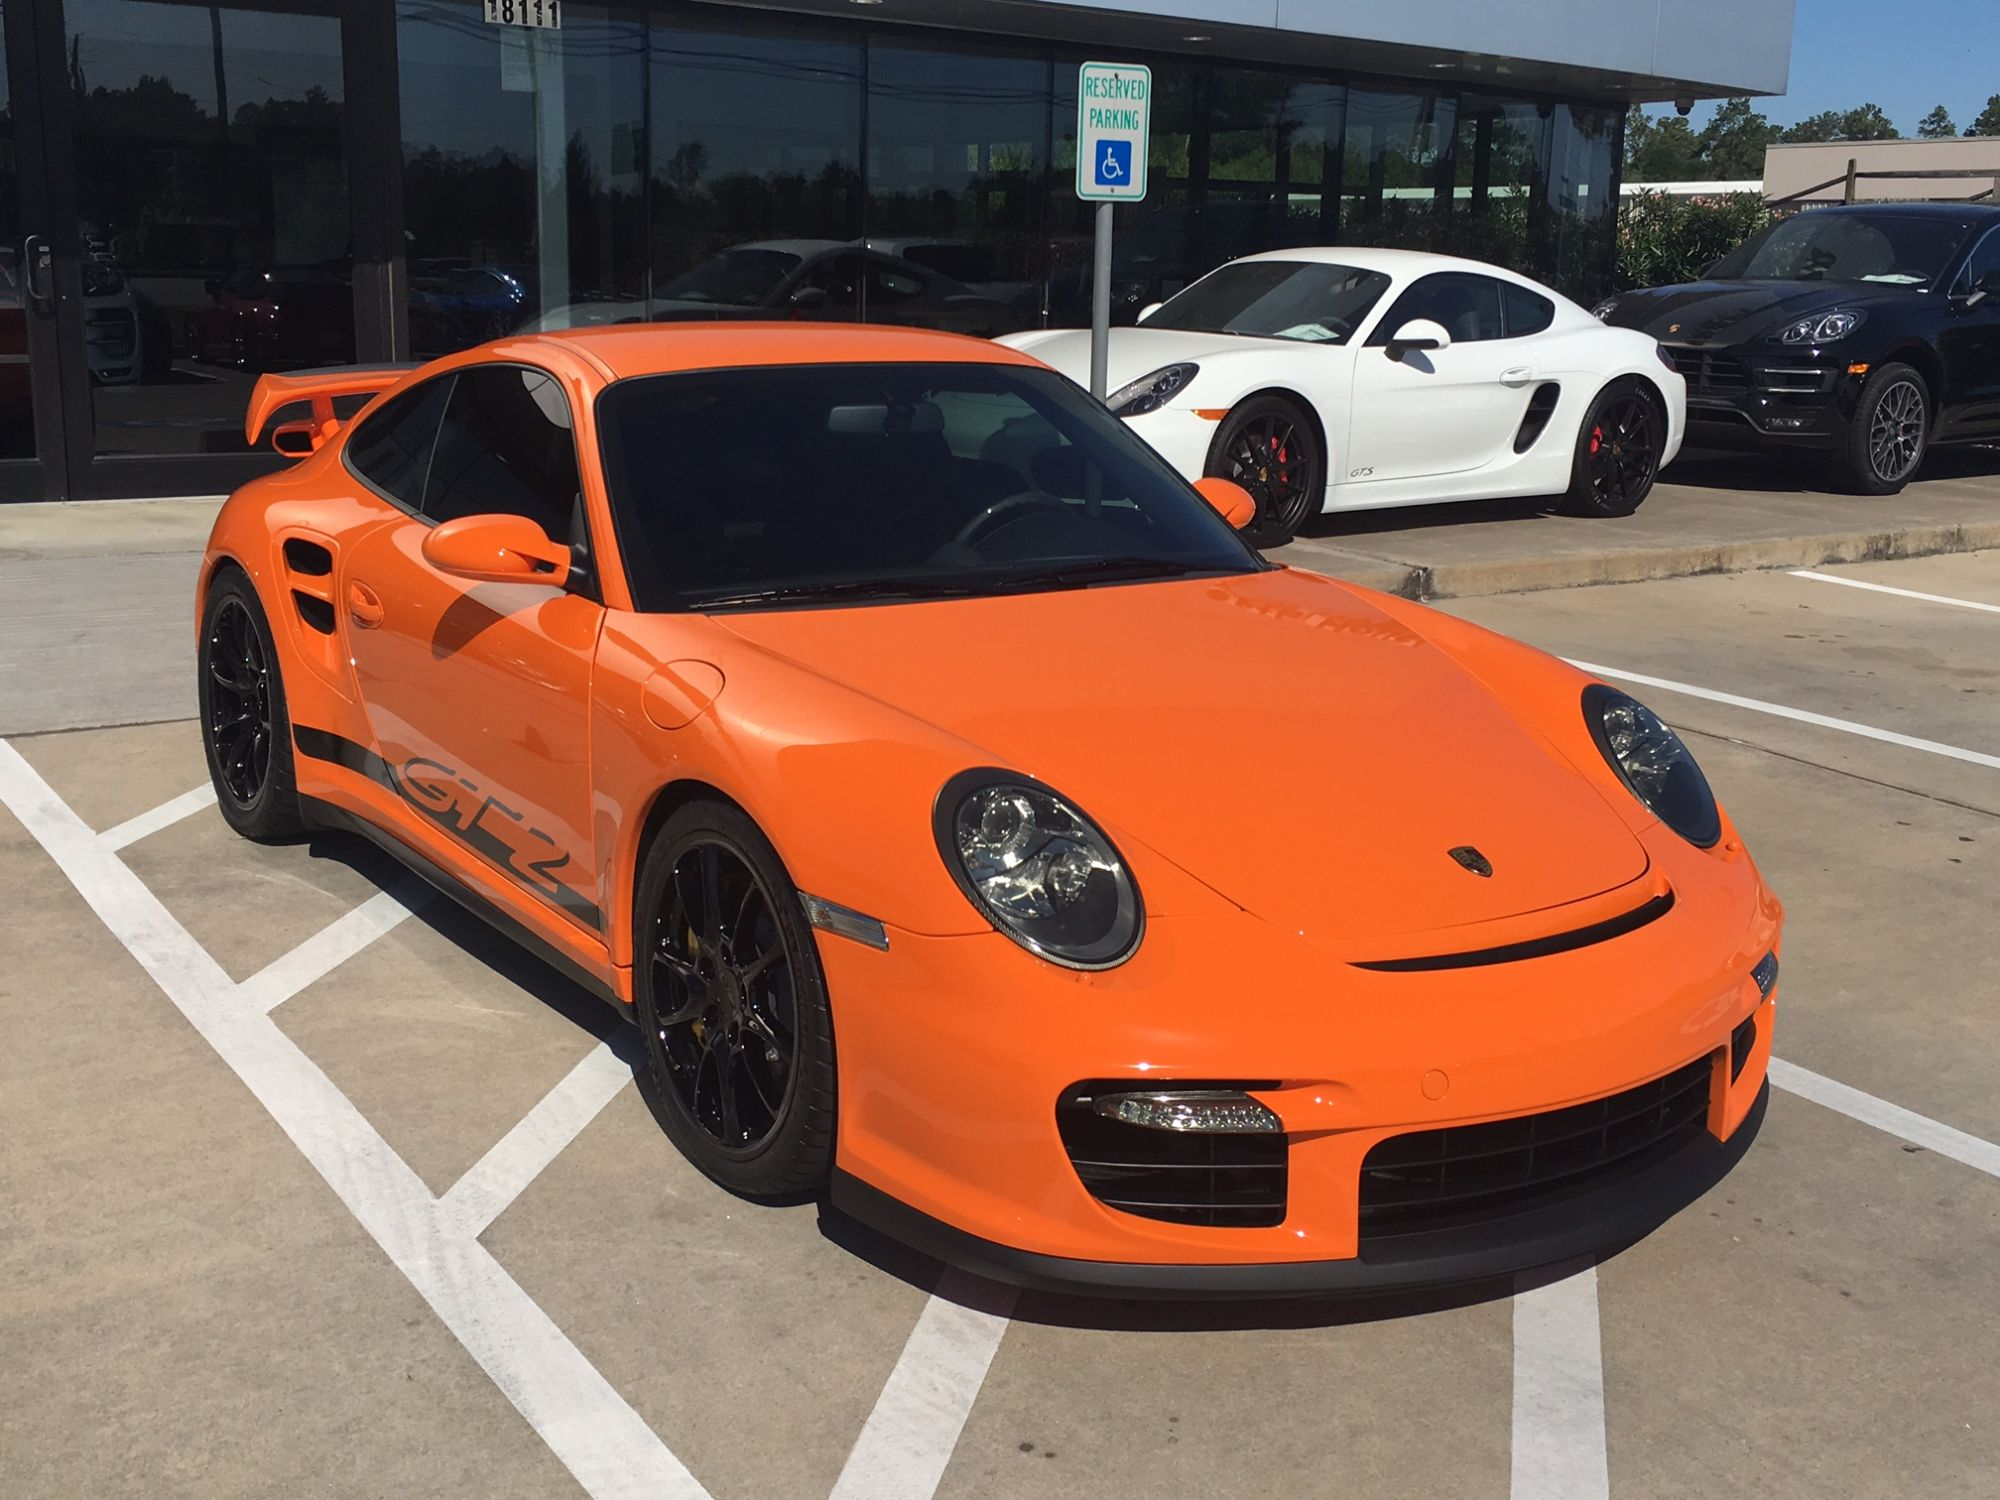 2009 porsche 911 gt2 in pts orange for sale at 410 000 autoevolution. Black Bedroom Furniture Sets. Home Design Ideas